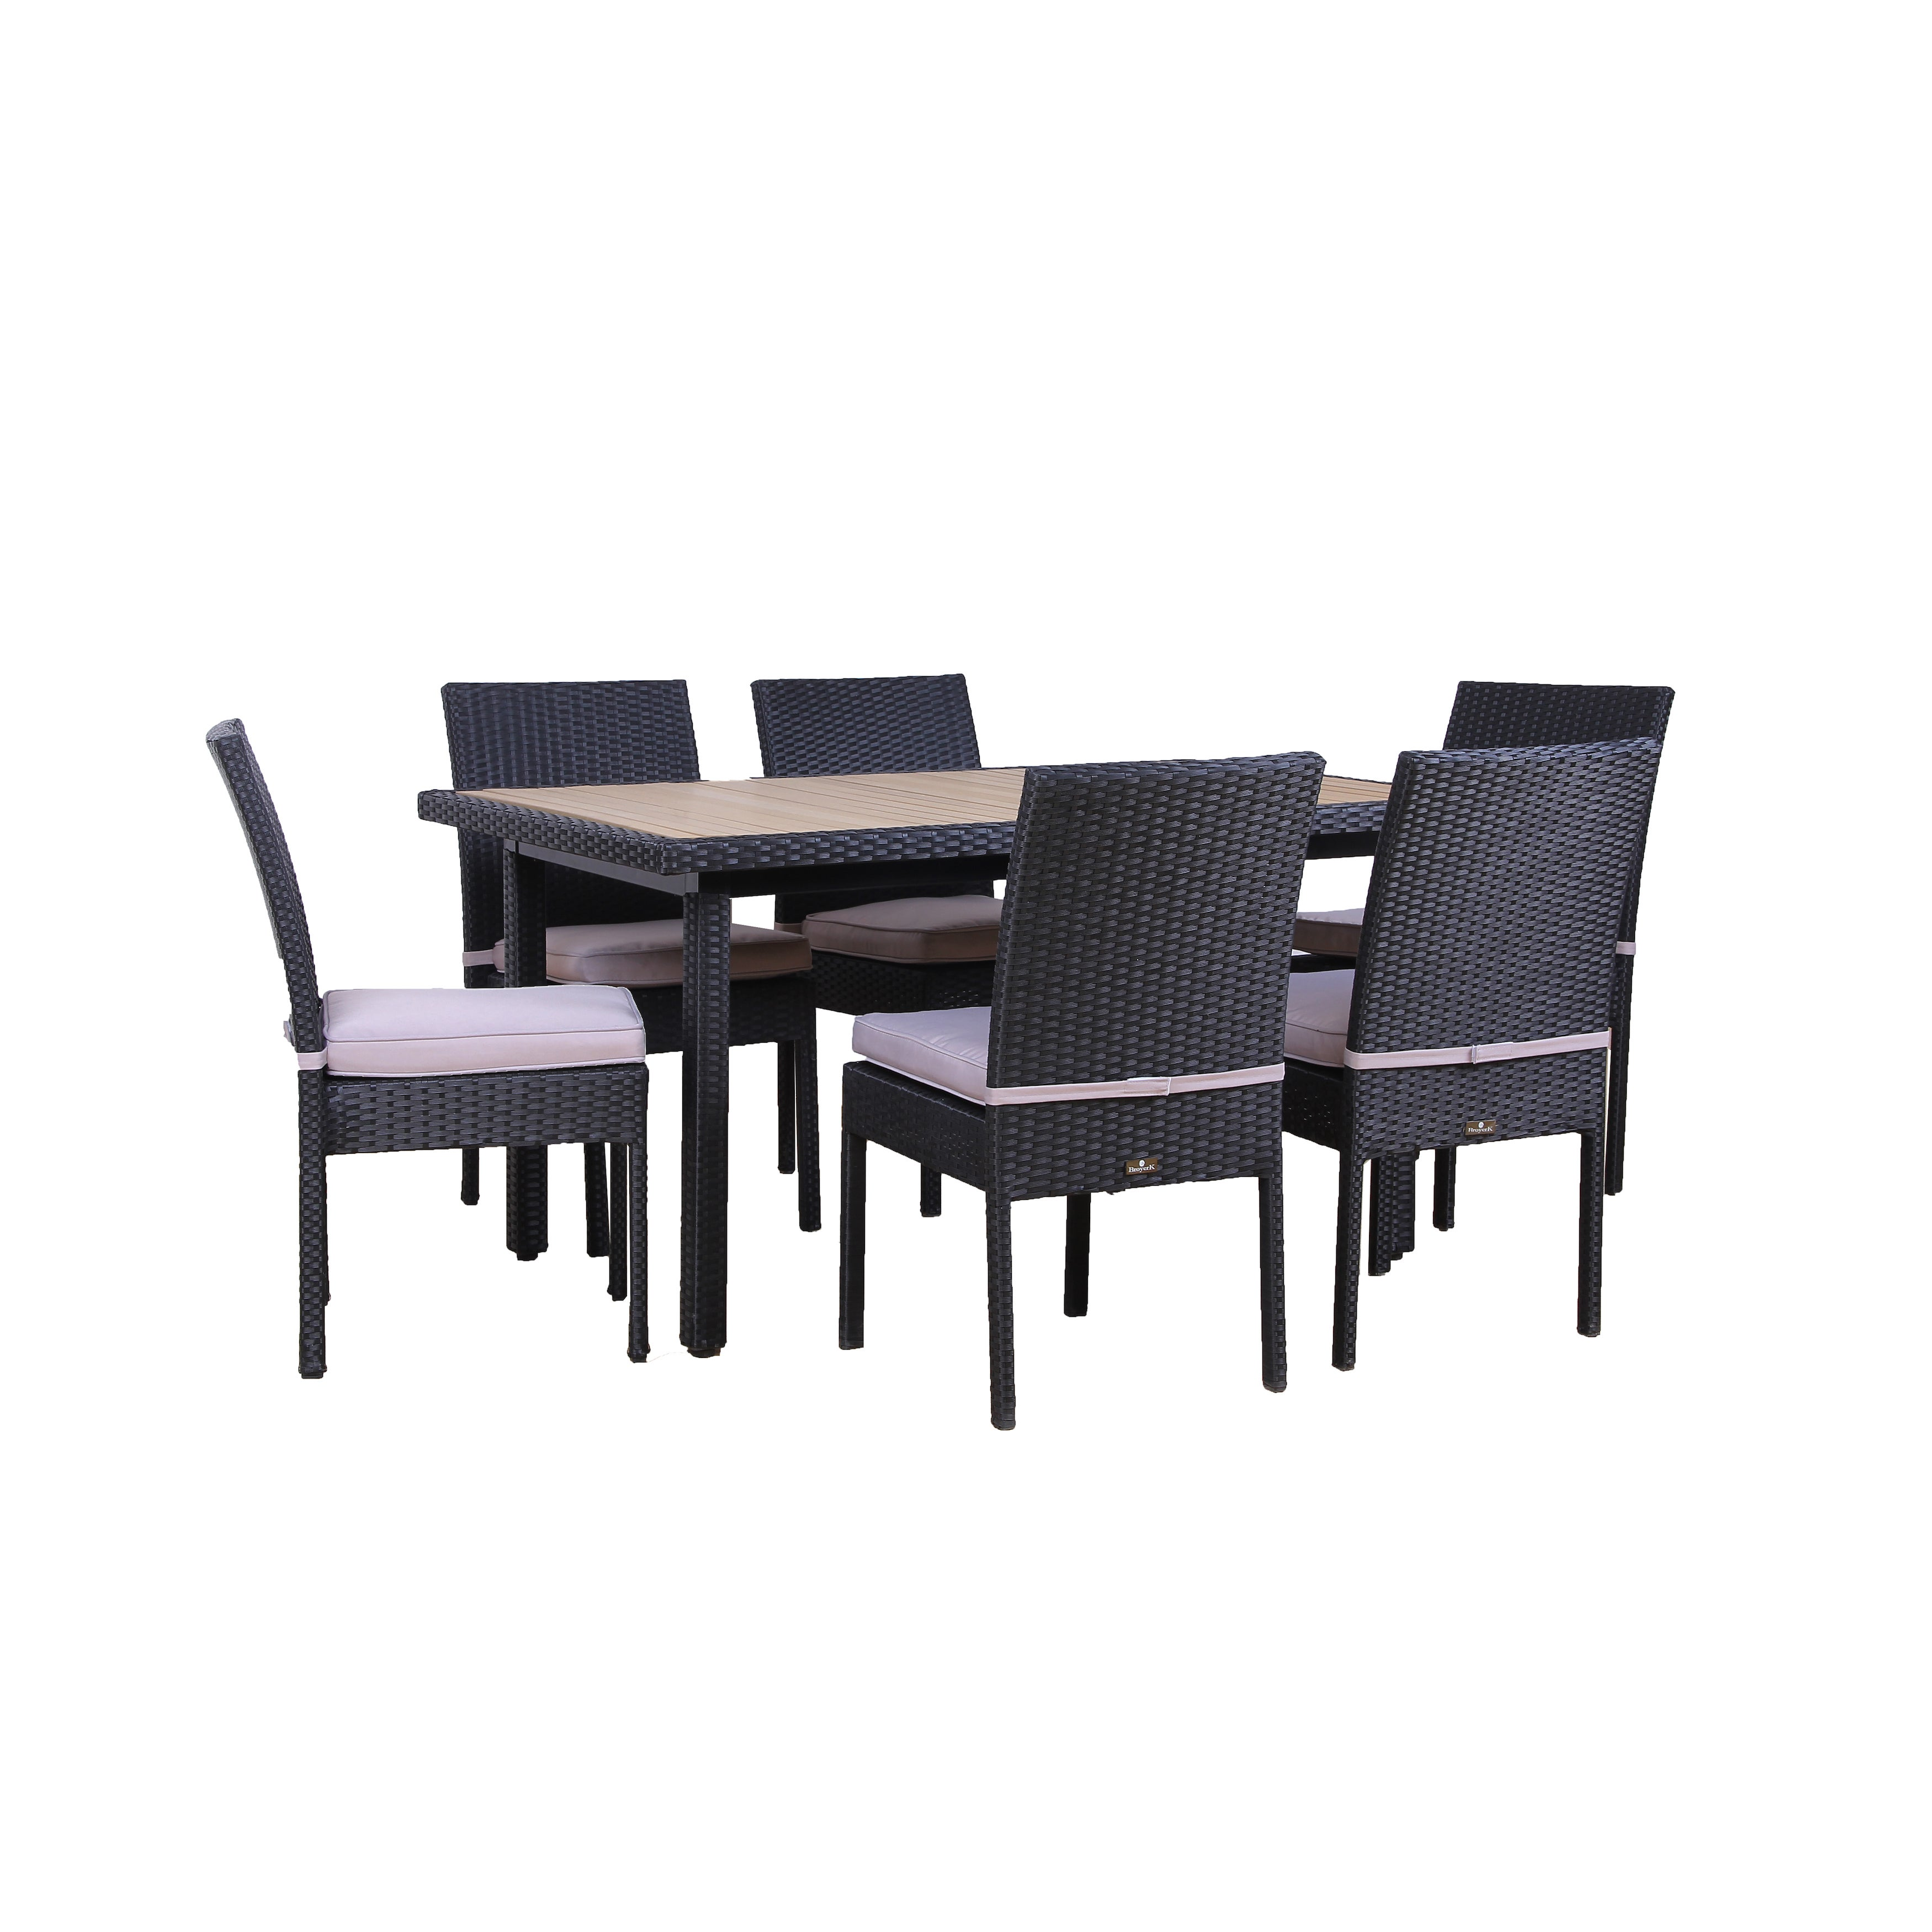 Broyerk Outdoor Dining Set Plastic Wood Top Table 6 Chairs Patio Furniture Free Shipping Today 14462503